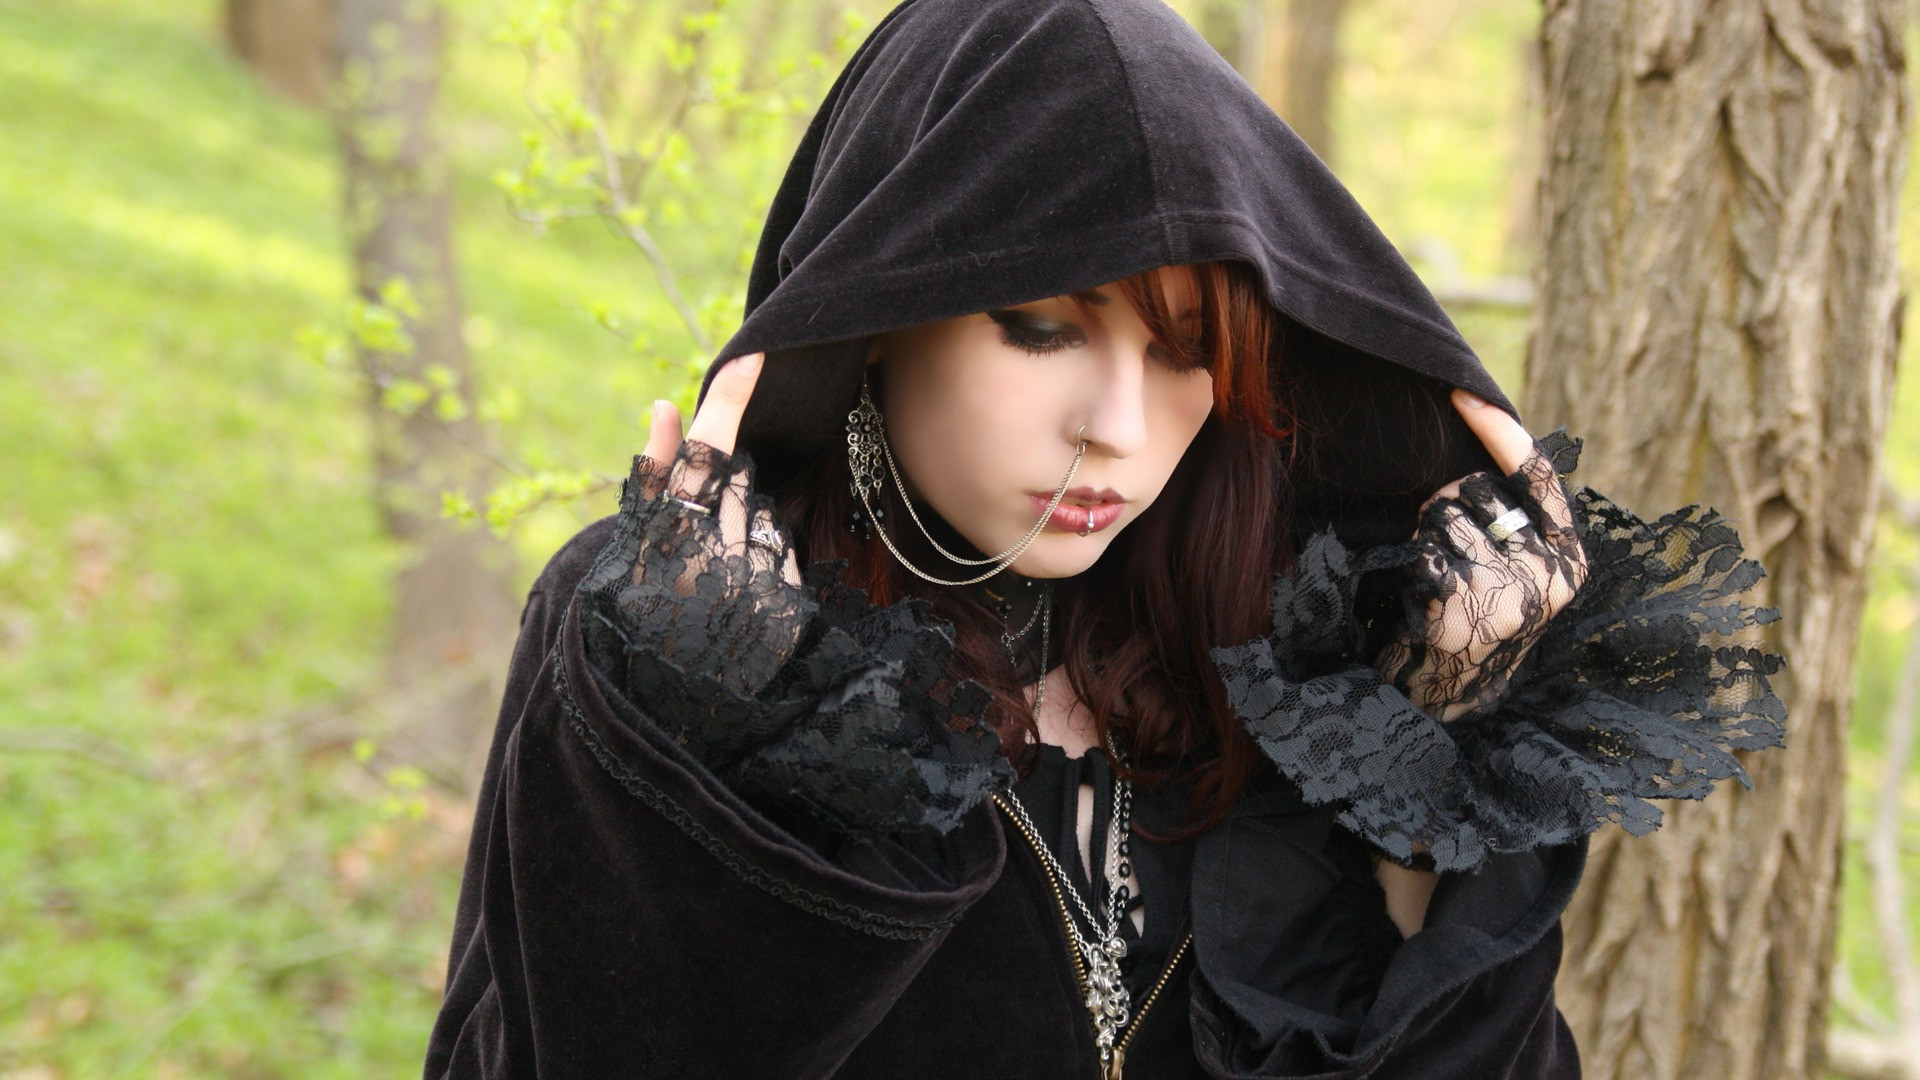 Gothic Anime Girl Wallpaper Women Gothic Piercing Wallpapers Hd Desktop And Mobile